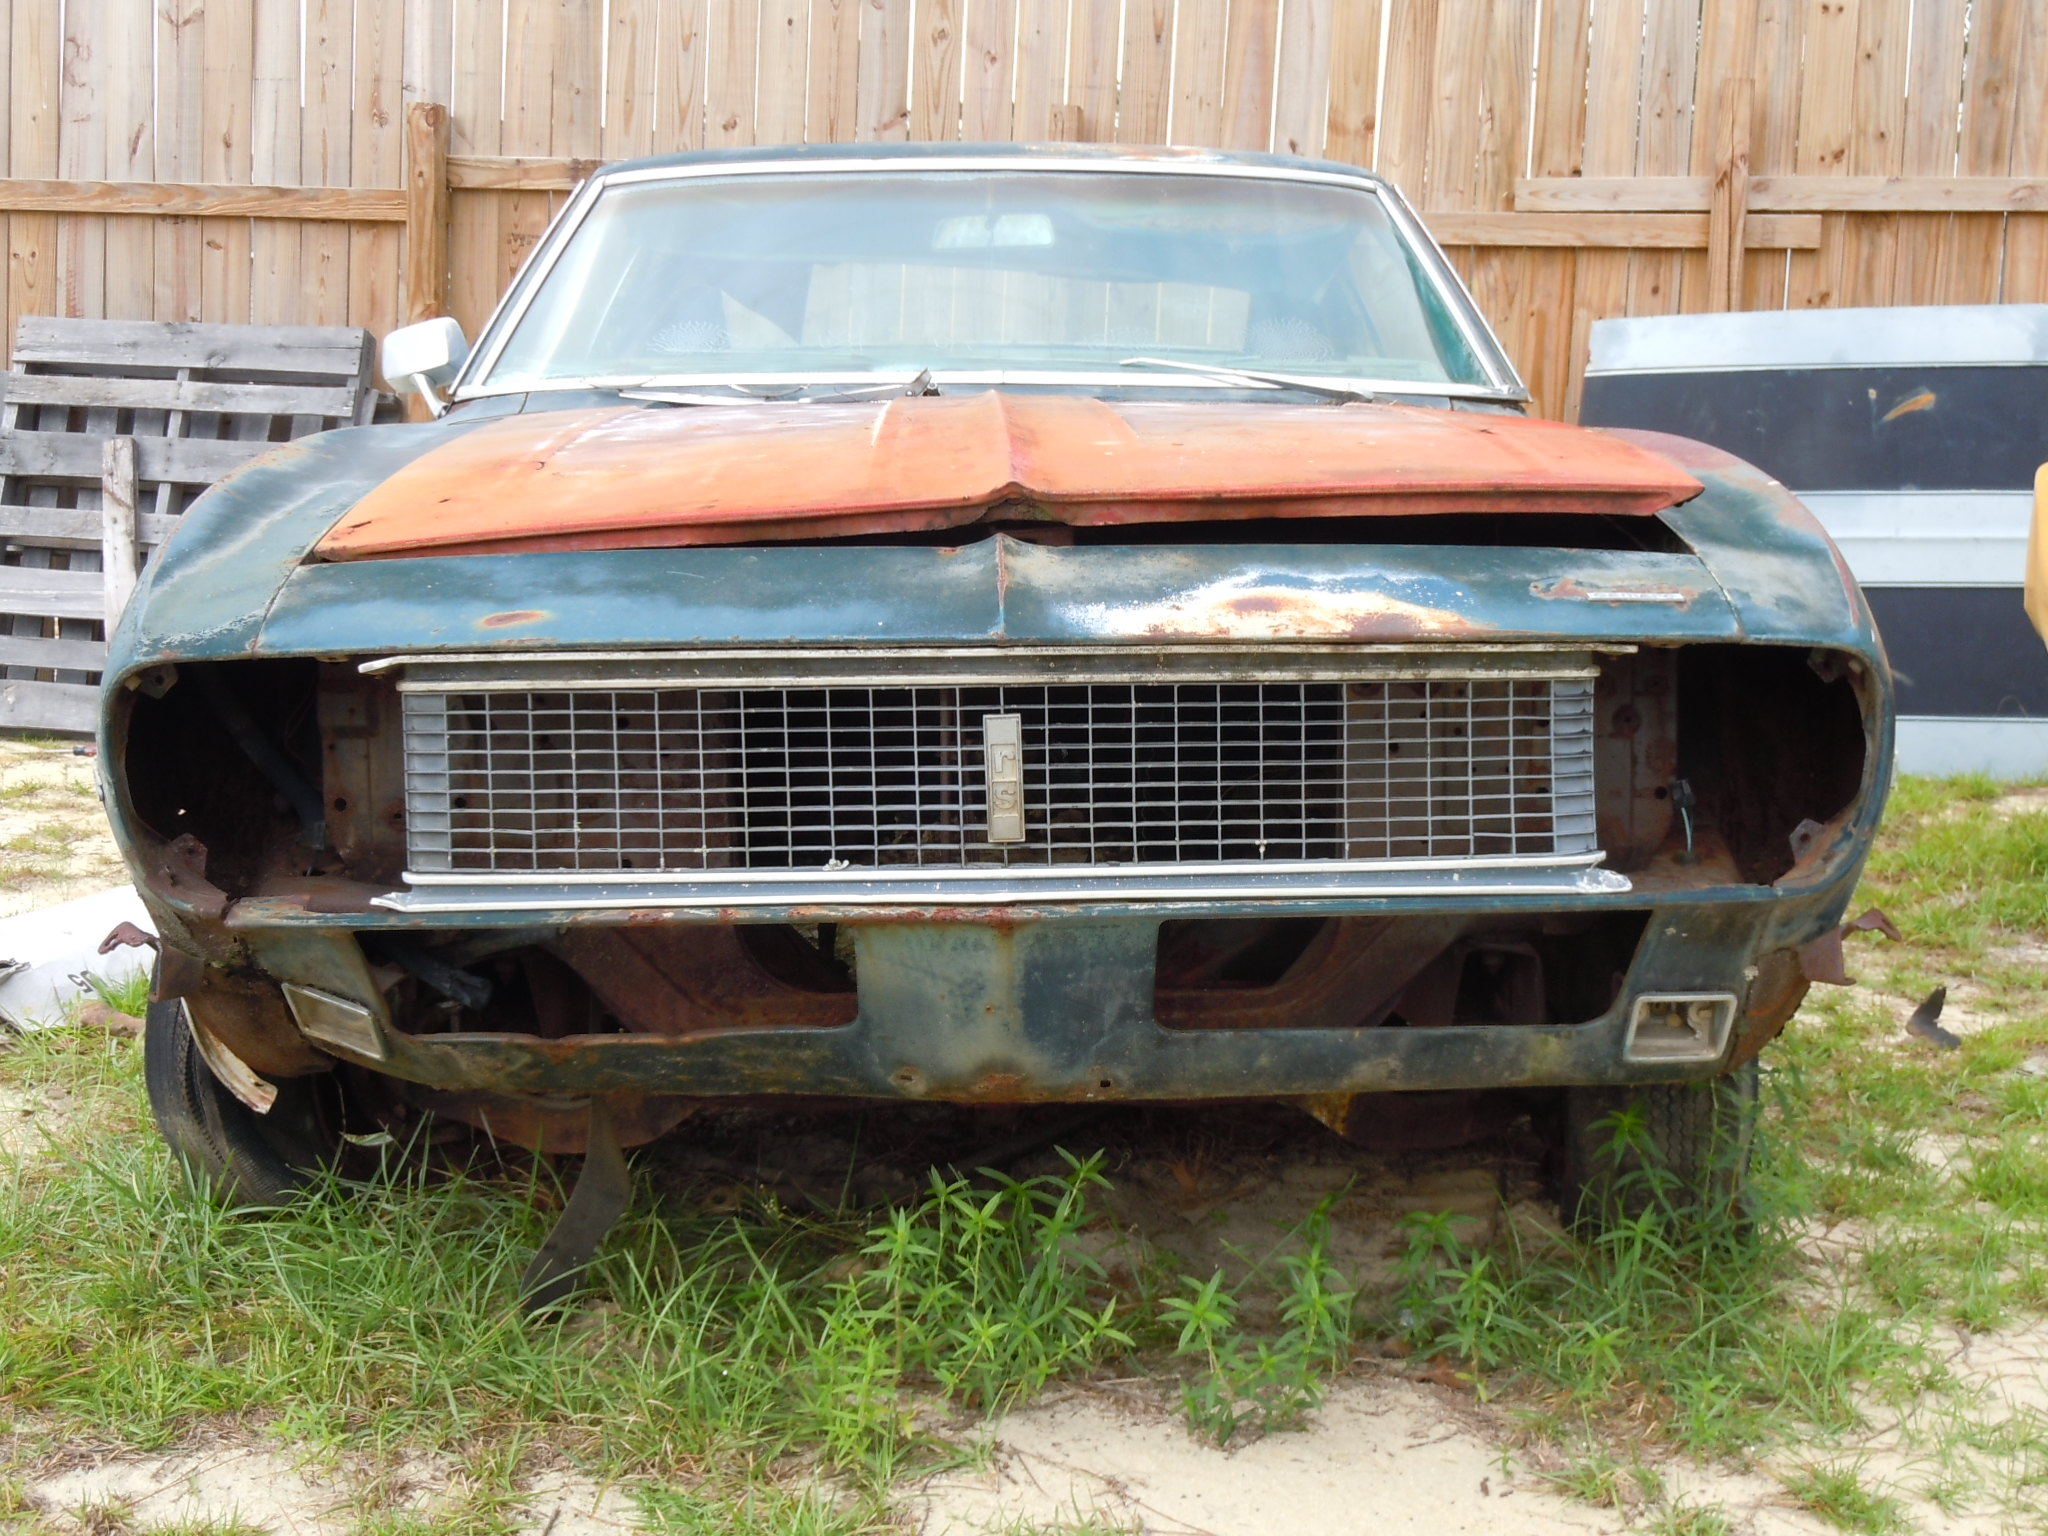 1969 Chevy Camaro Project For Sale On Craigslist Autos